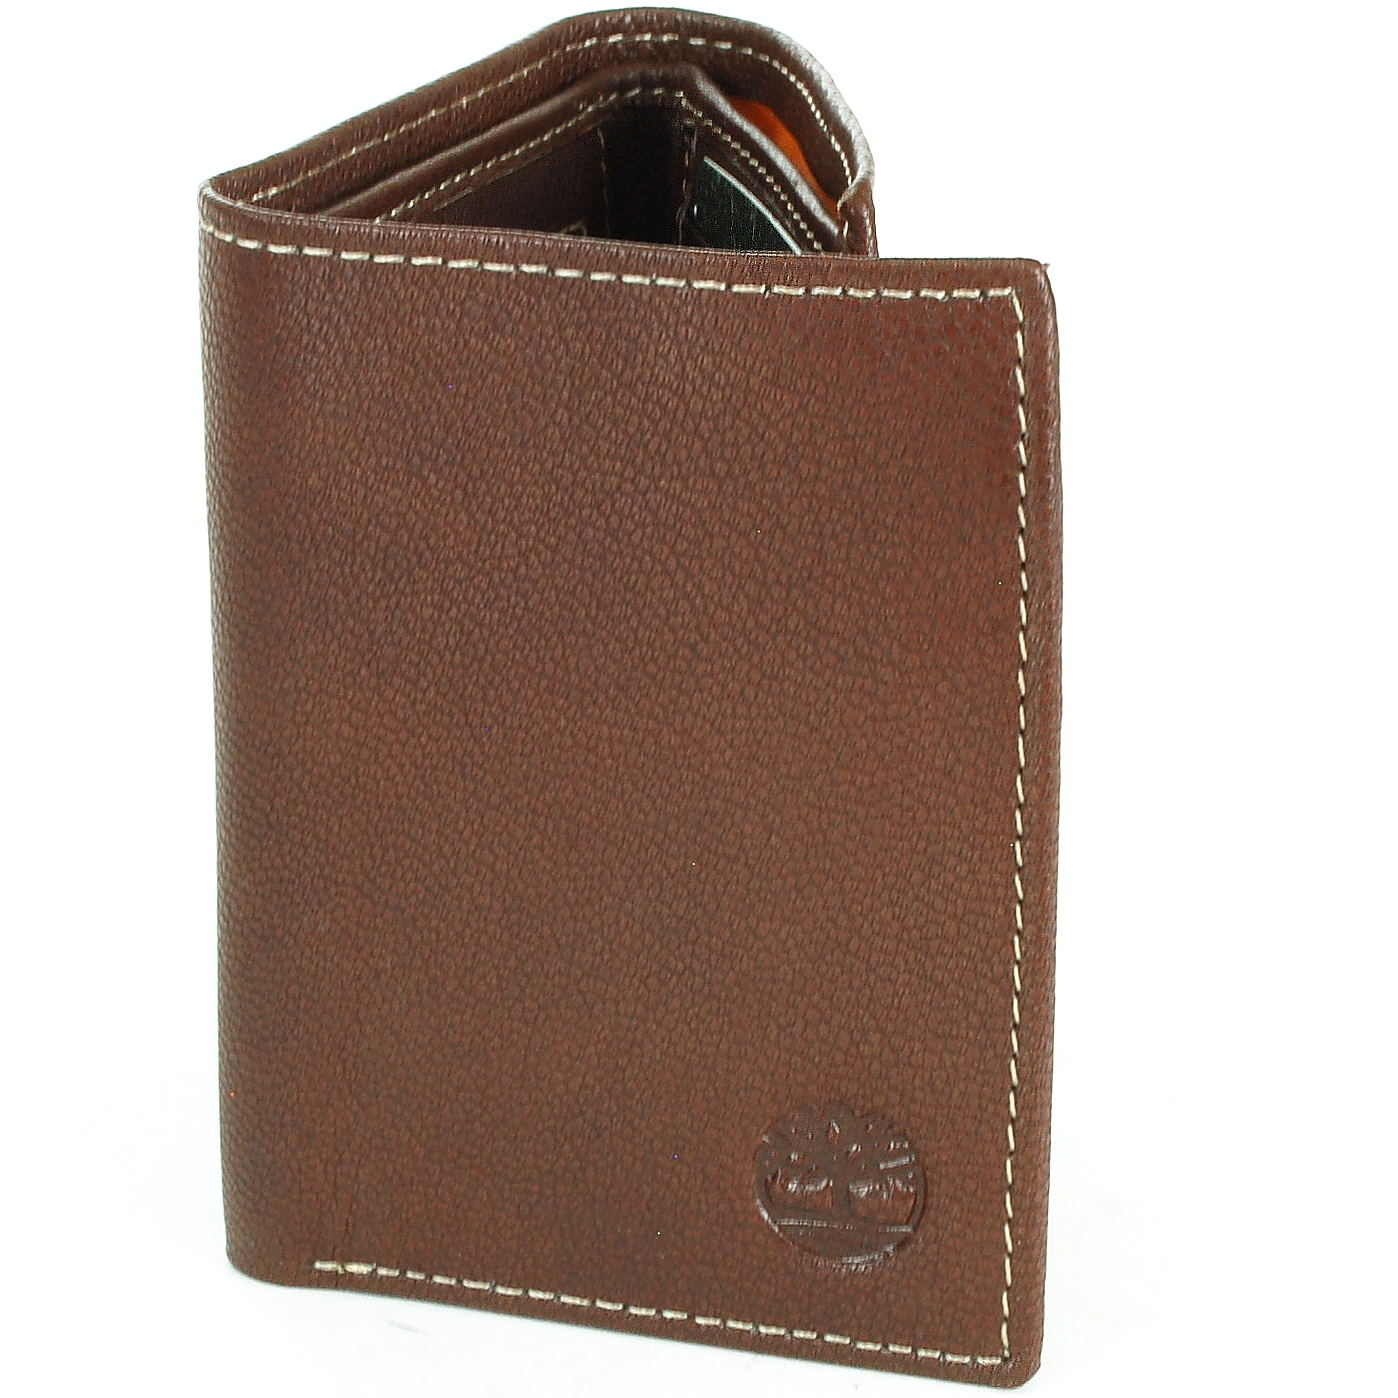 aad6f3f552fb4 Timberland Men s Slim Trifold Wallet Soft Genuine Leather ID Card ...